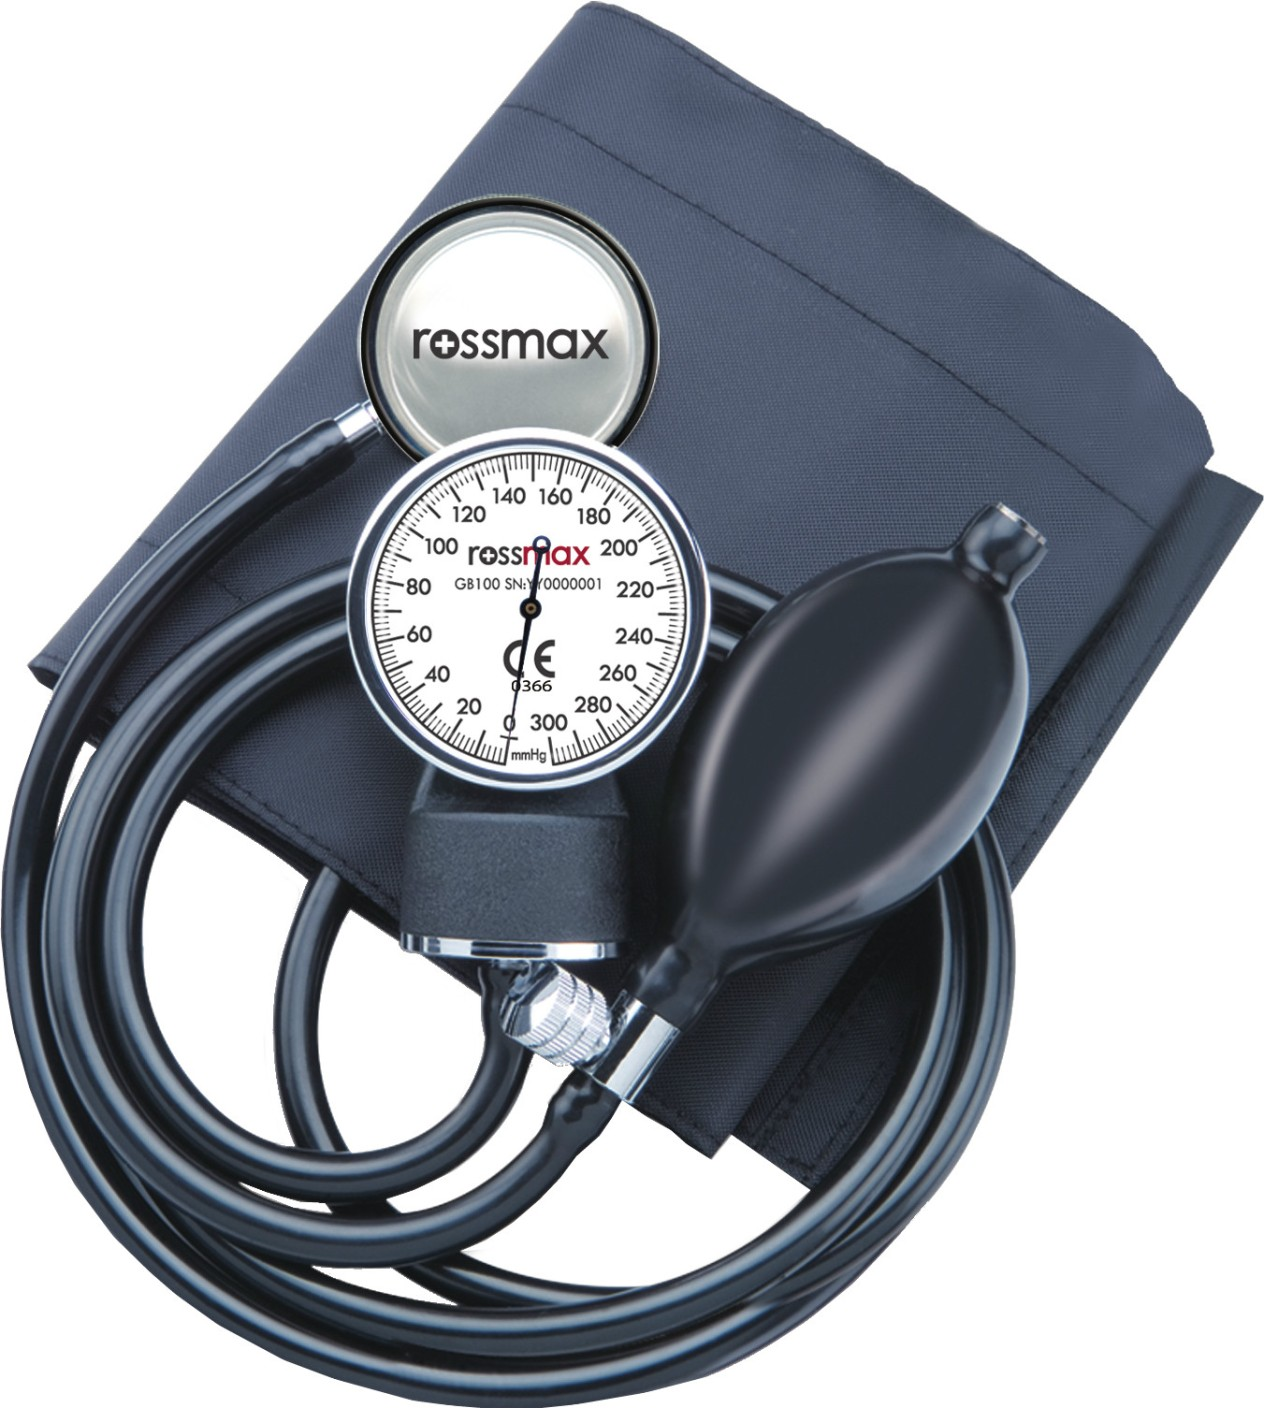 Omron Healthcare Blood Pressure Monitor Release Date Manual Guide